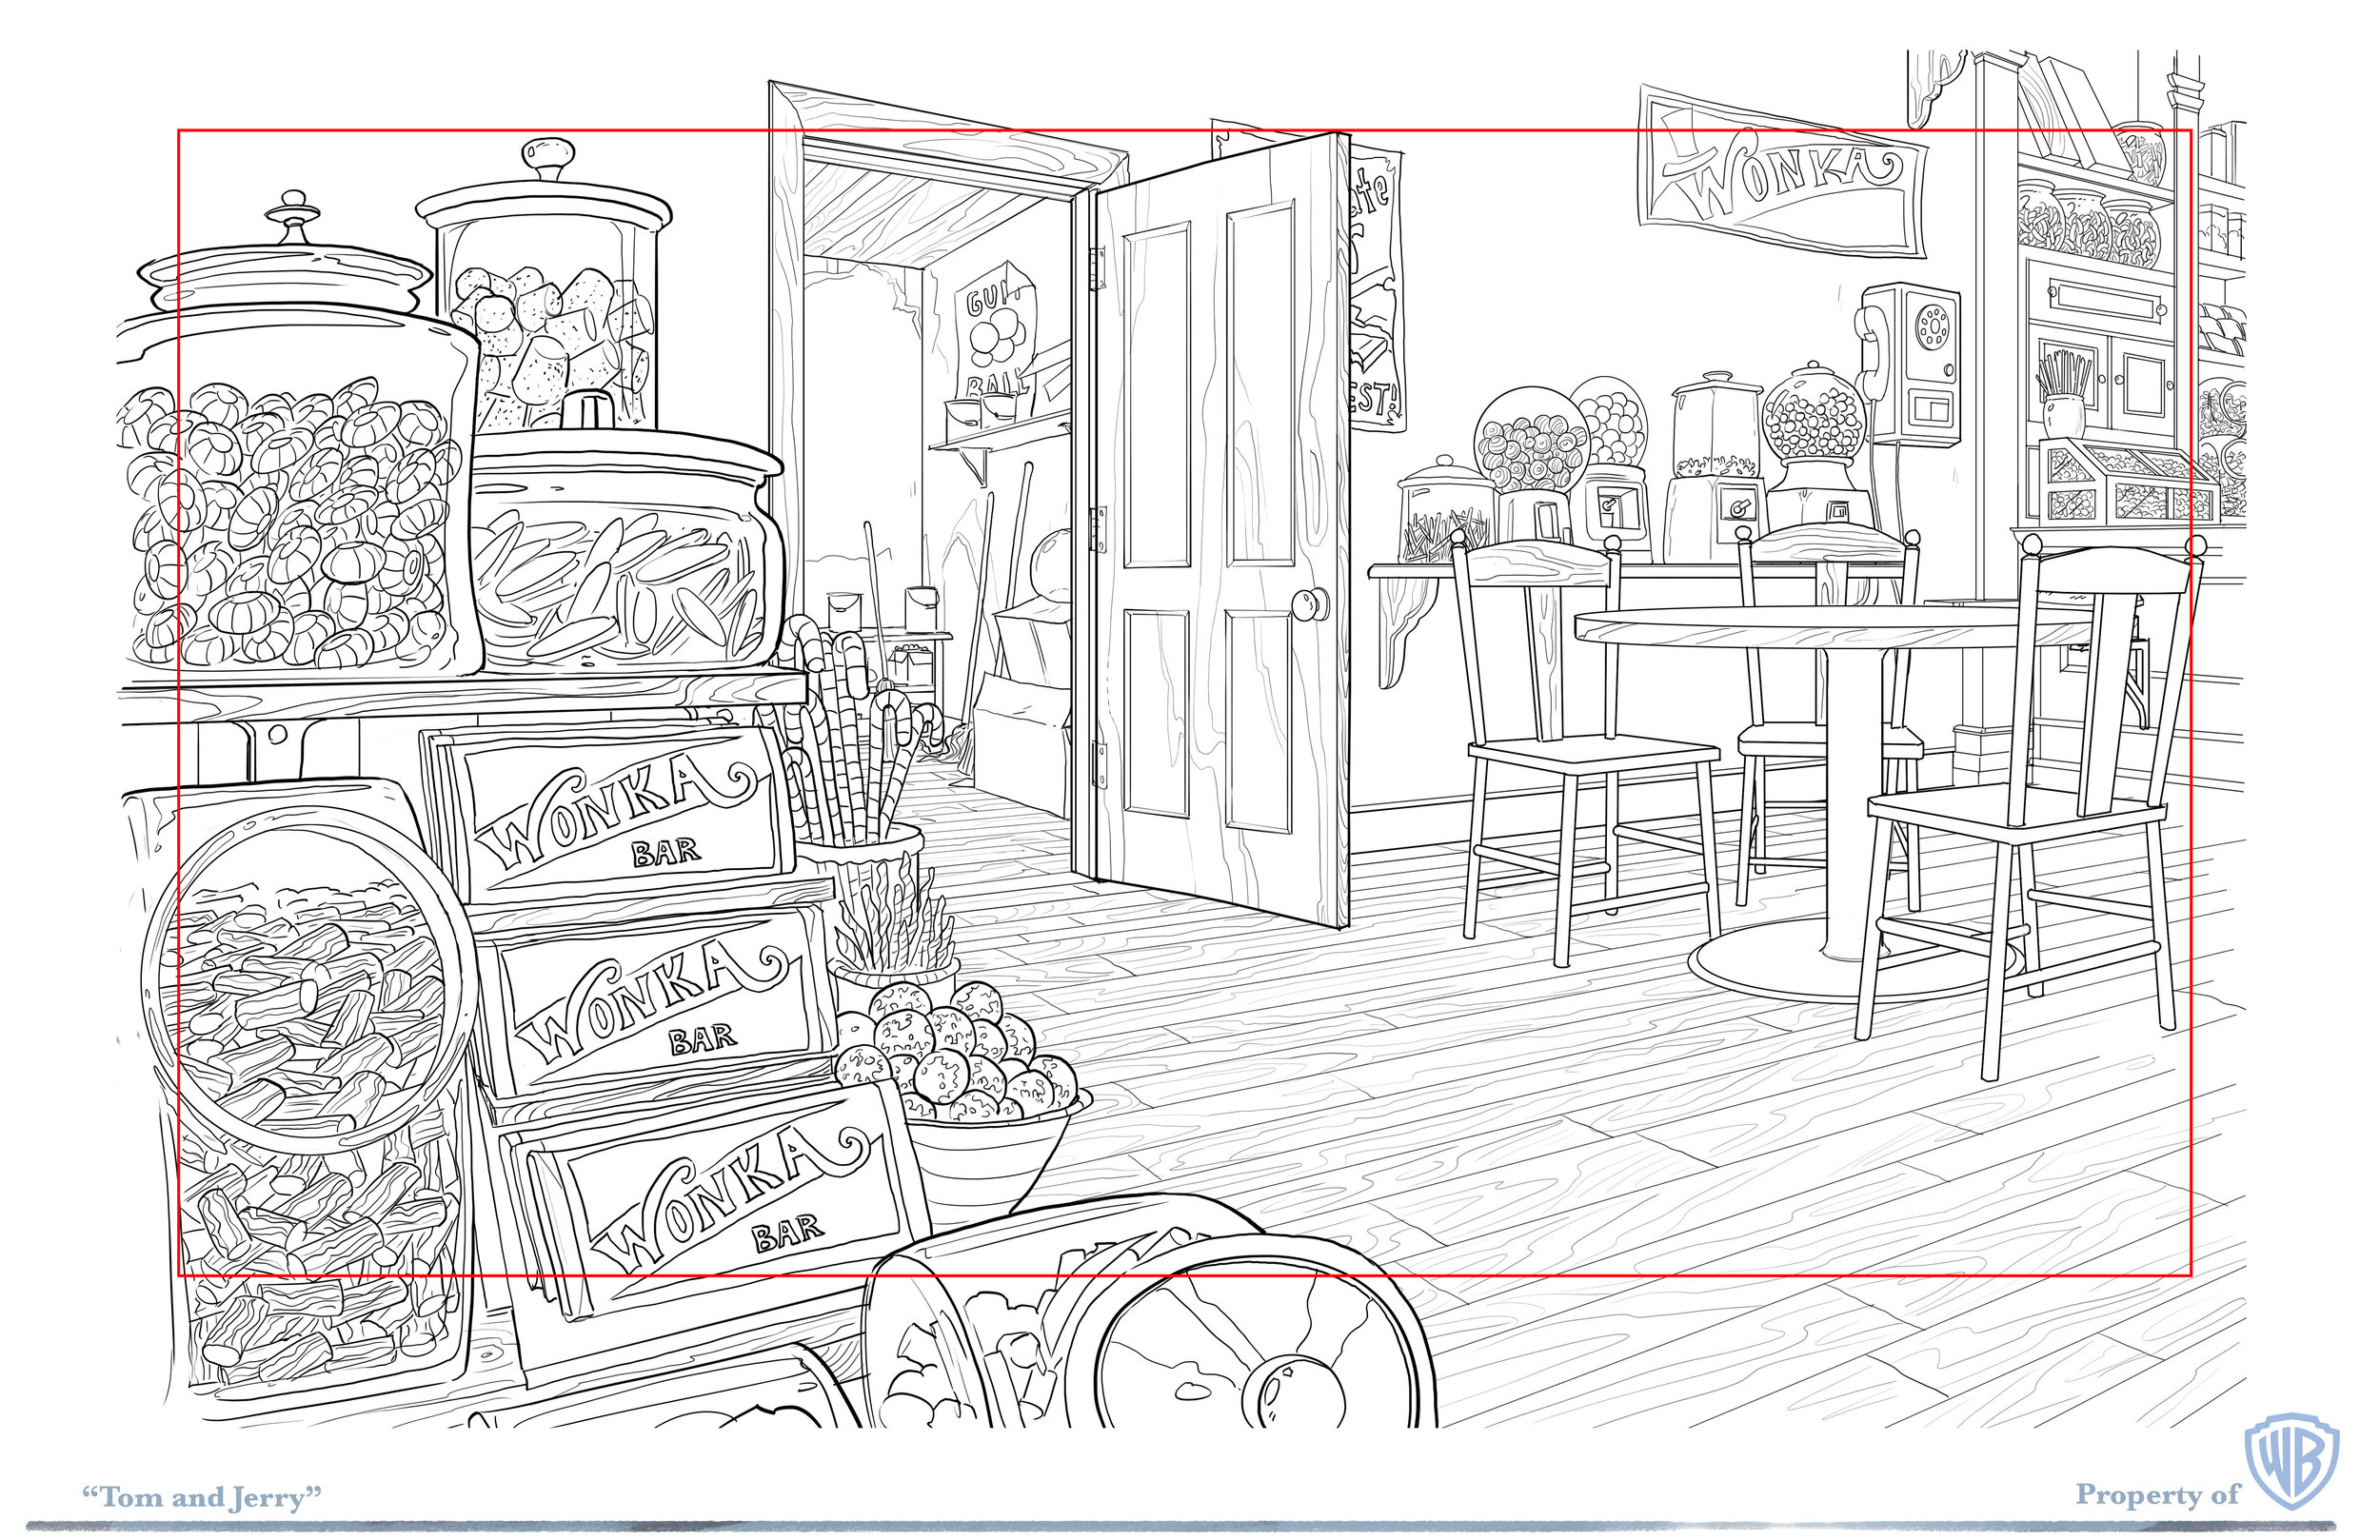 layout pages_Tom and Jerry_pg4.jpg